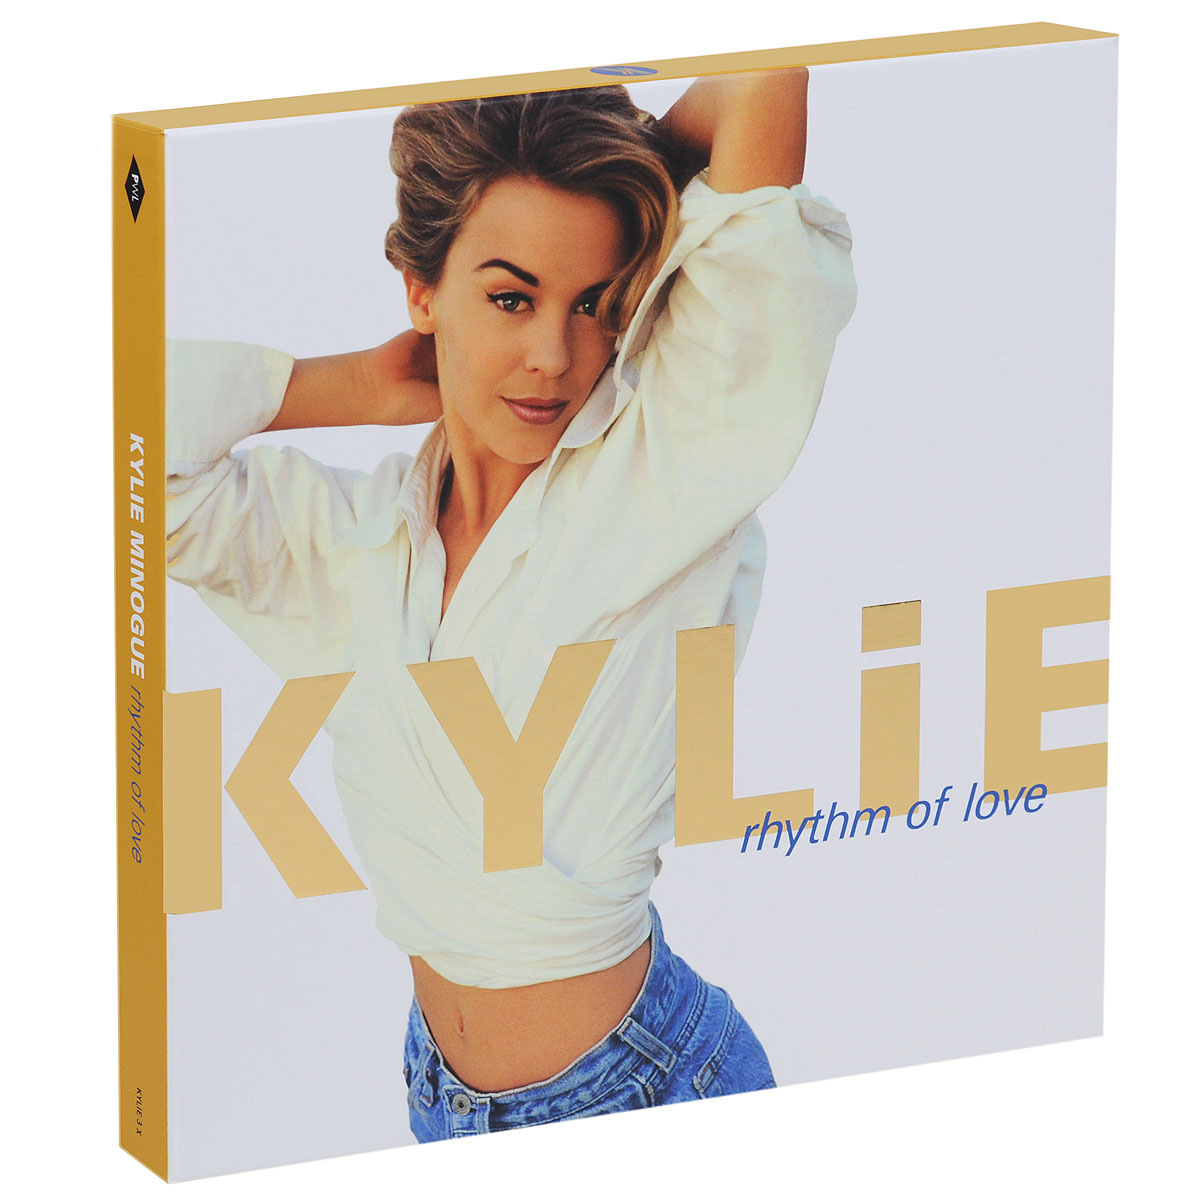 Кайли Миноуг Kylie Minogue. Rhythm Of Love (2 CD + DVD + LP) partners lp cd